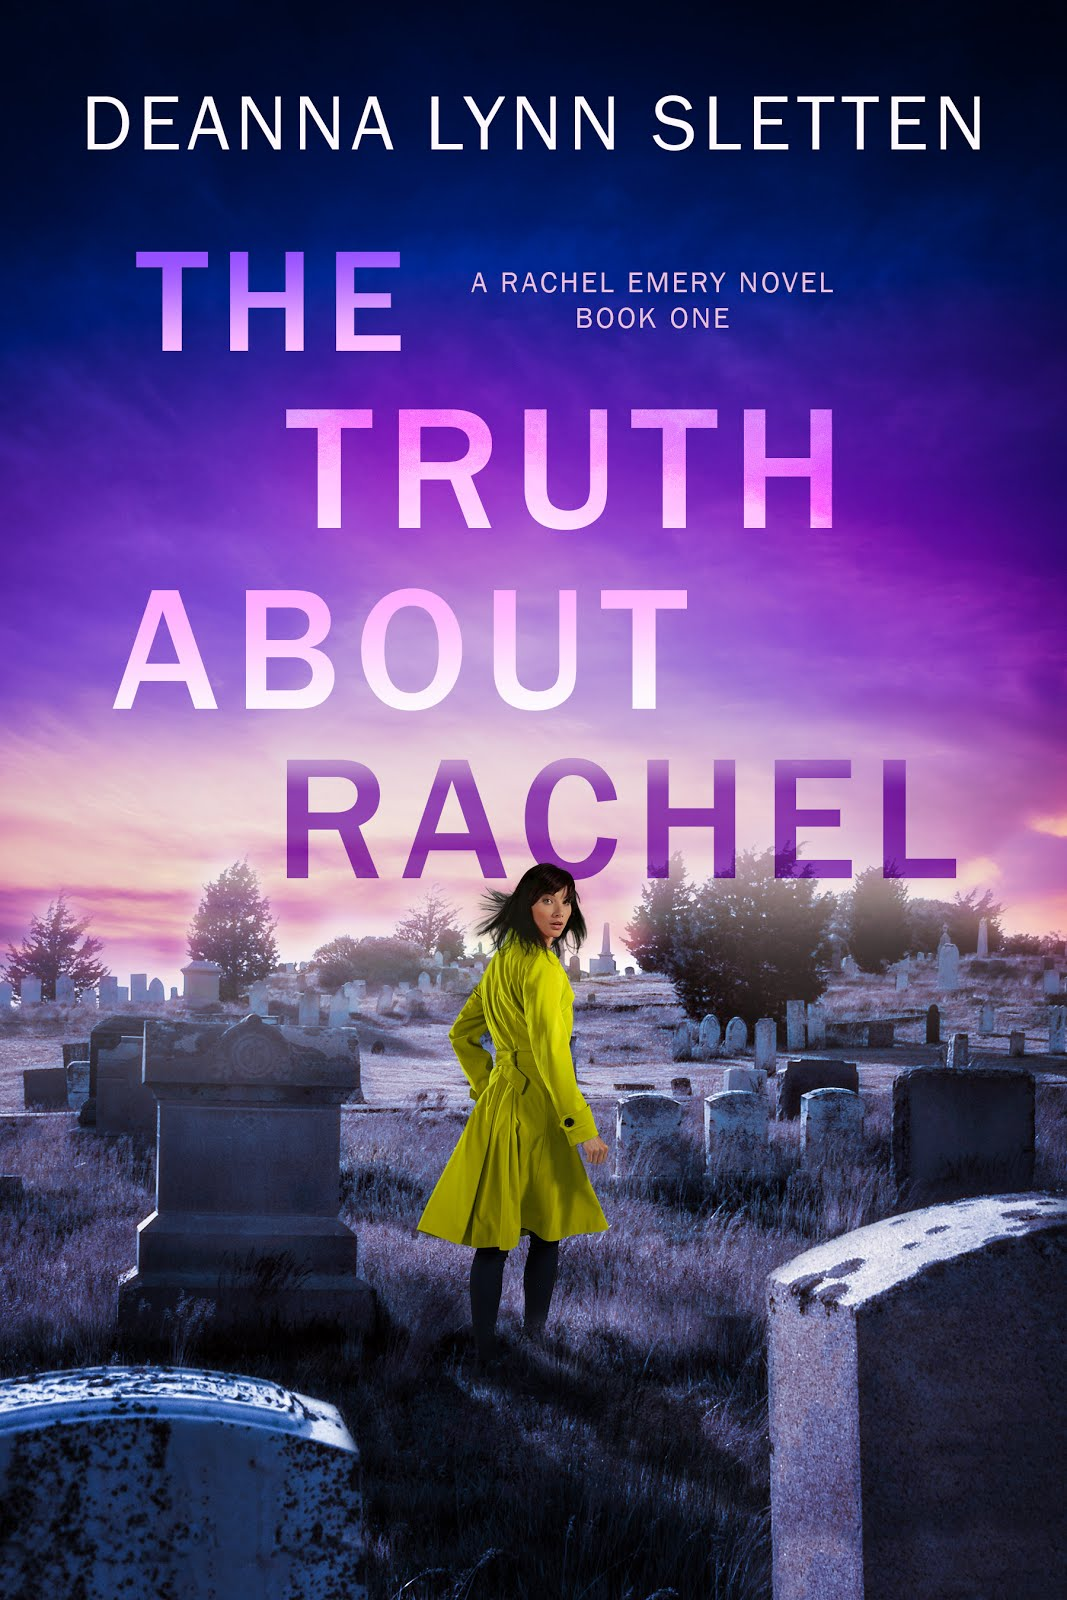 Preorder Now! The Truth About Rachel